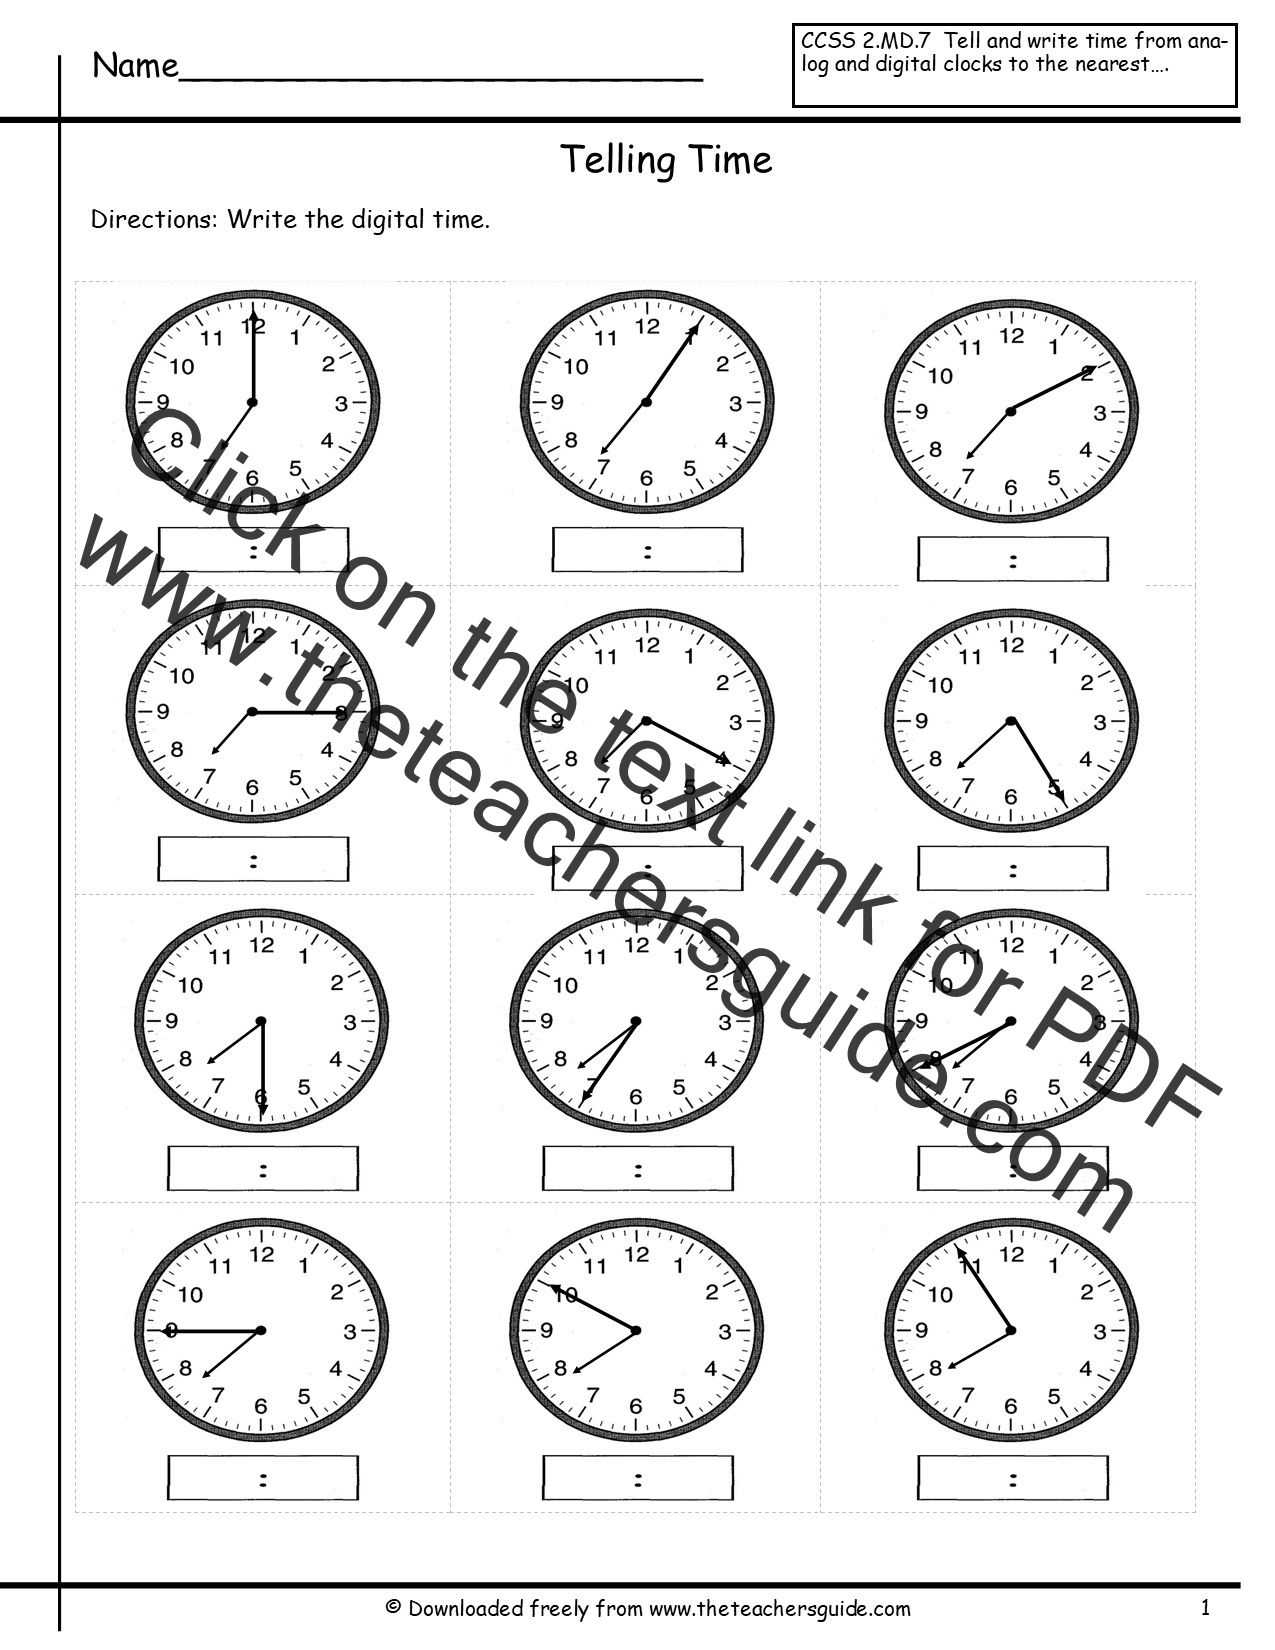 Worksheets Time Telling Worksheets telling time worksheets from the teachers guide worksheets